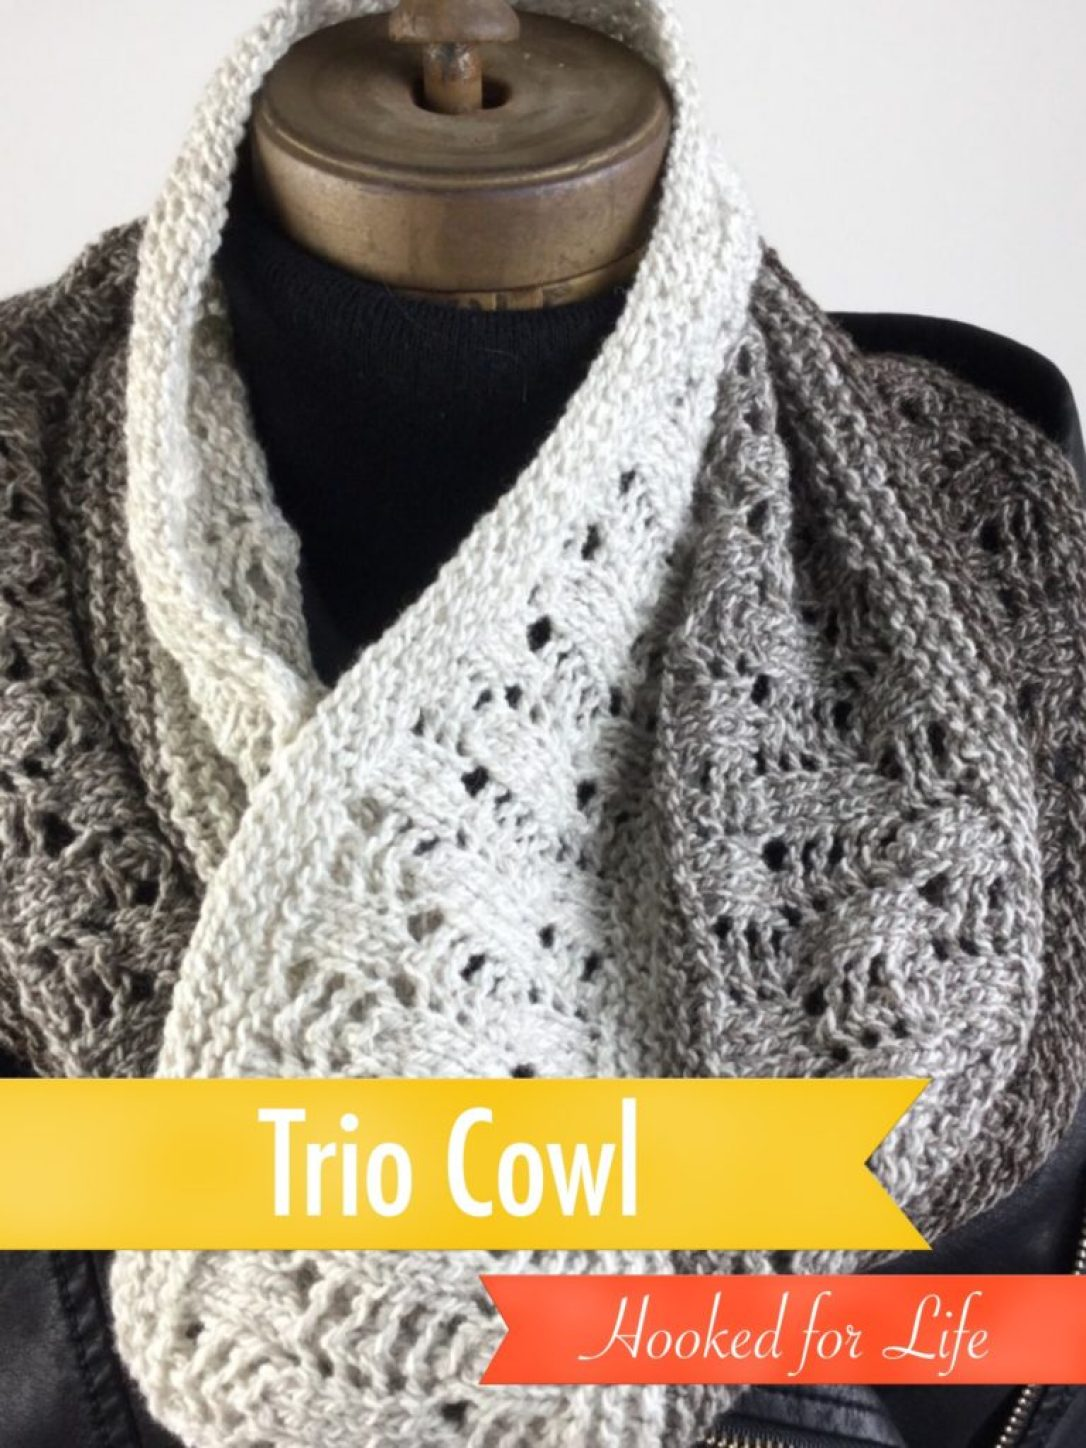 Free knit pattern for the Trio Cowl, in Mountain Meadow Wool. Knit in the round with a simple lace stitch.